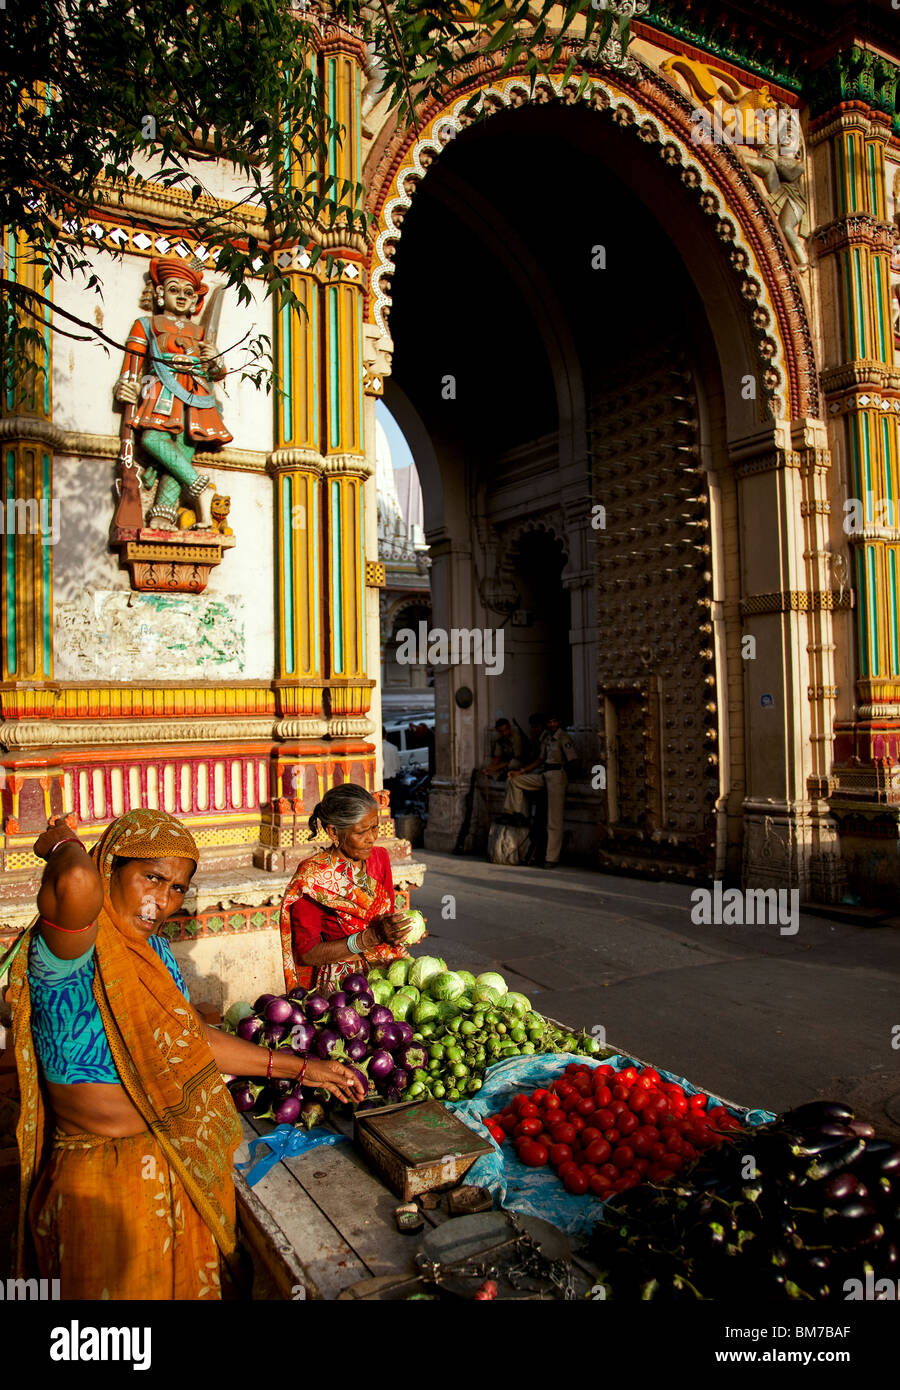 A vegetable seller in the old town in Ahmedabad, Gujurat India - Stock Image